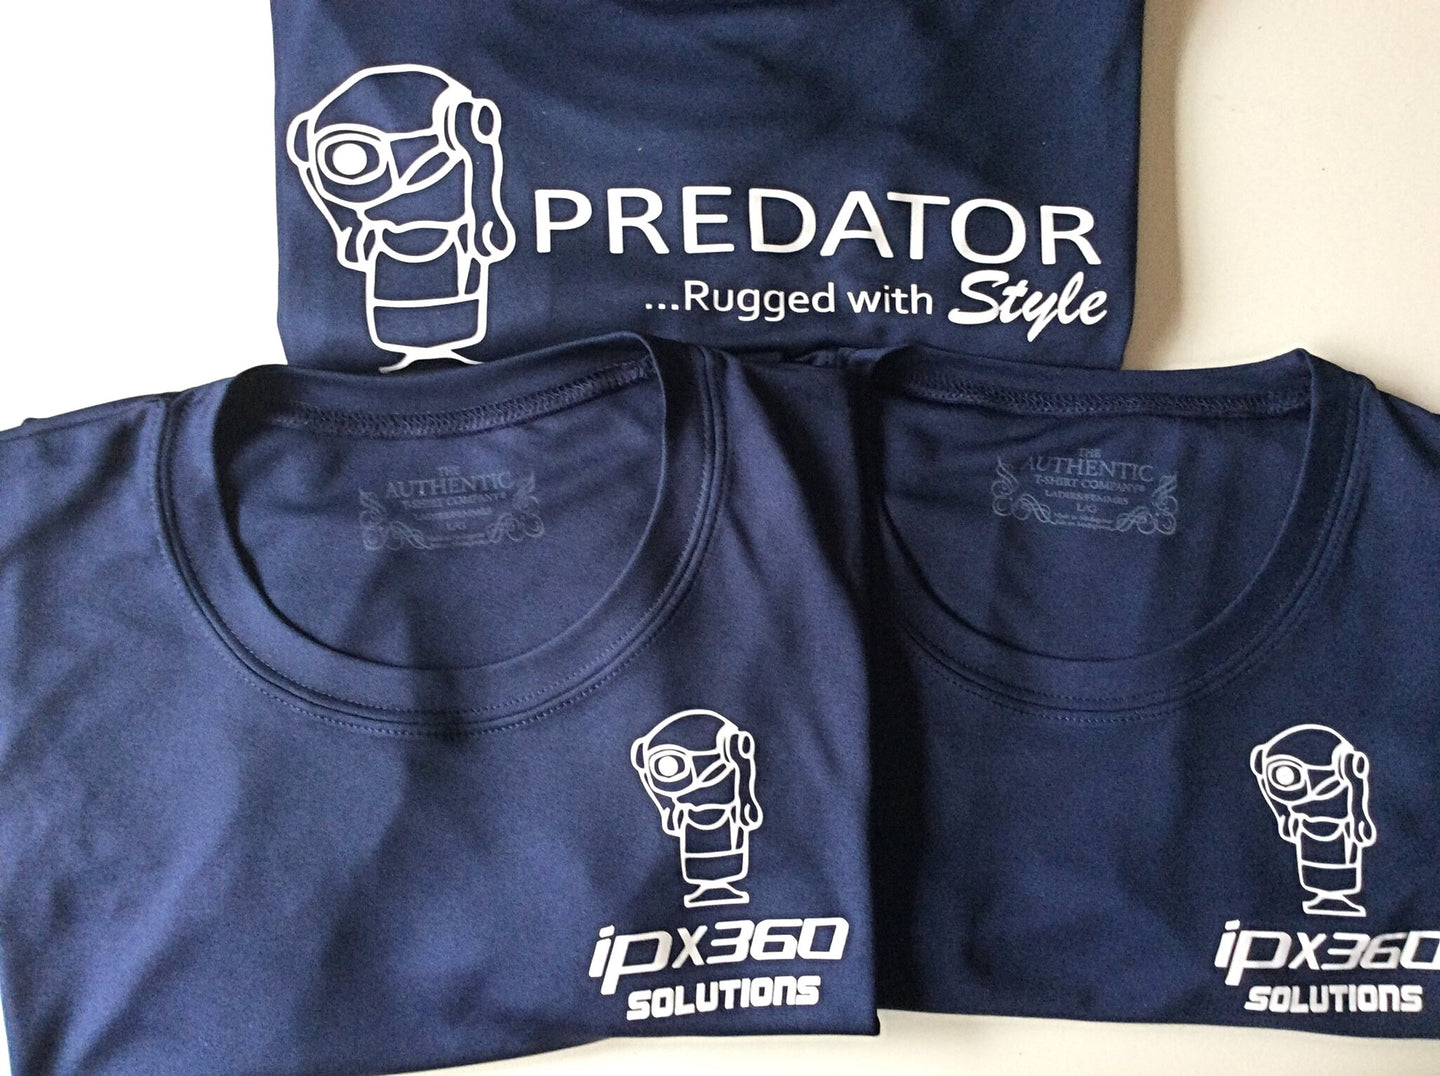 IPX360/PREDATOR Rugged With Style Activewear